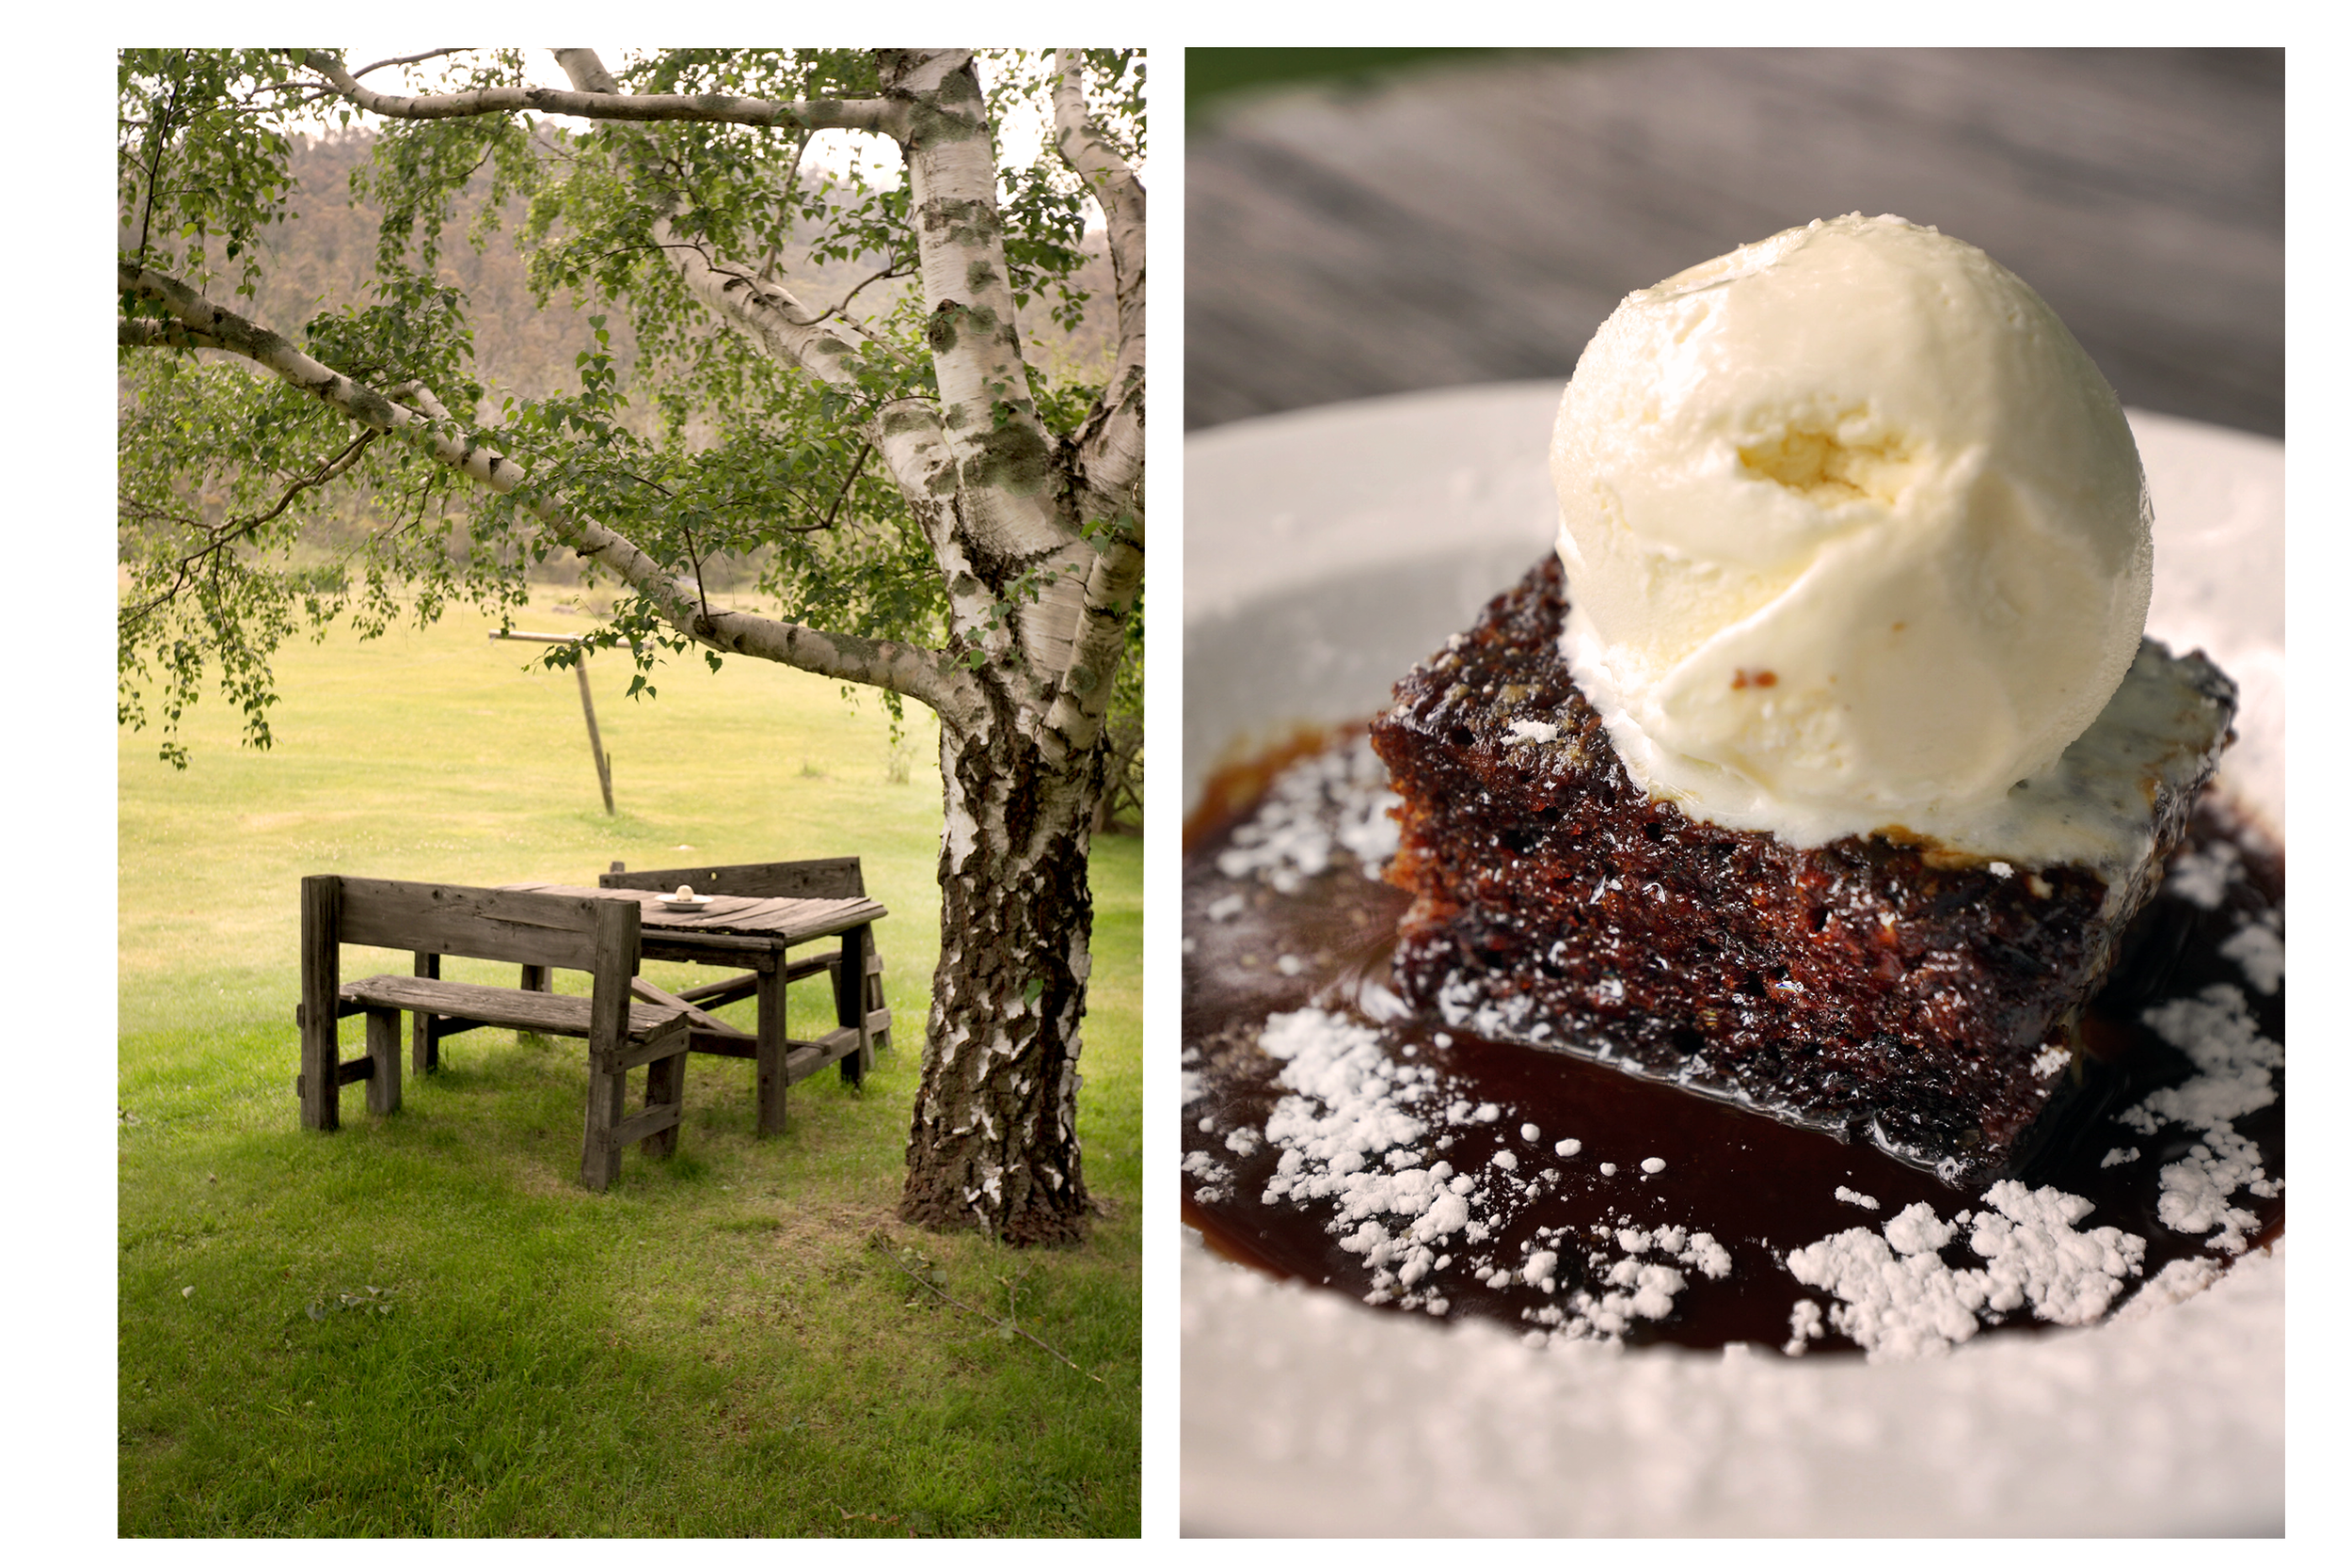 Chocolate pudding under a tree at Crackenback Farm